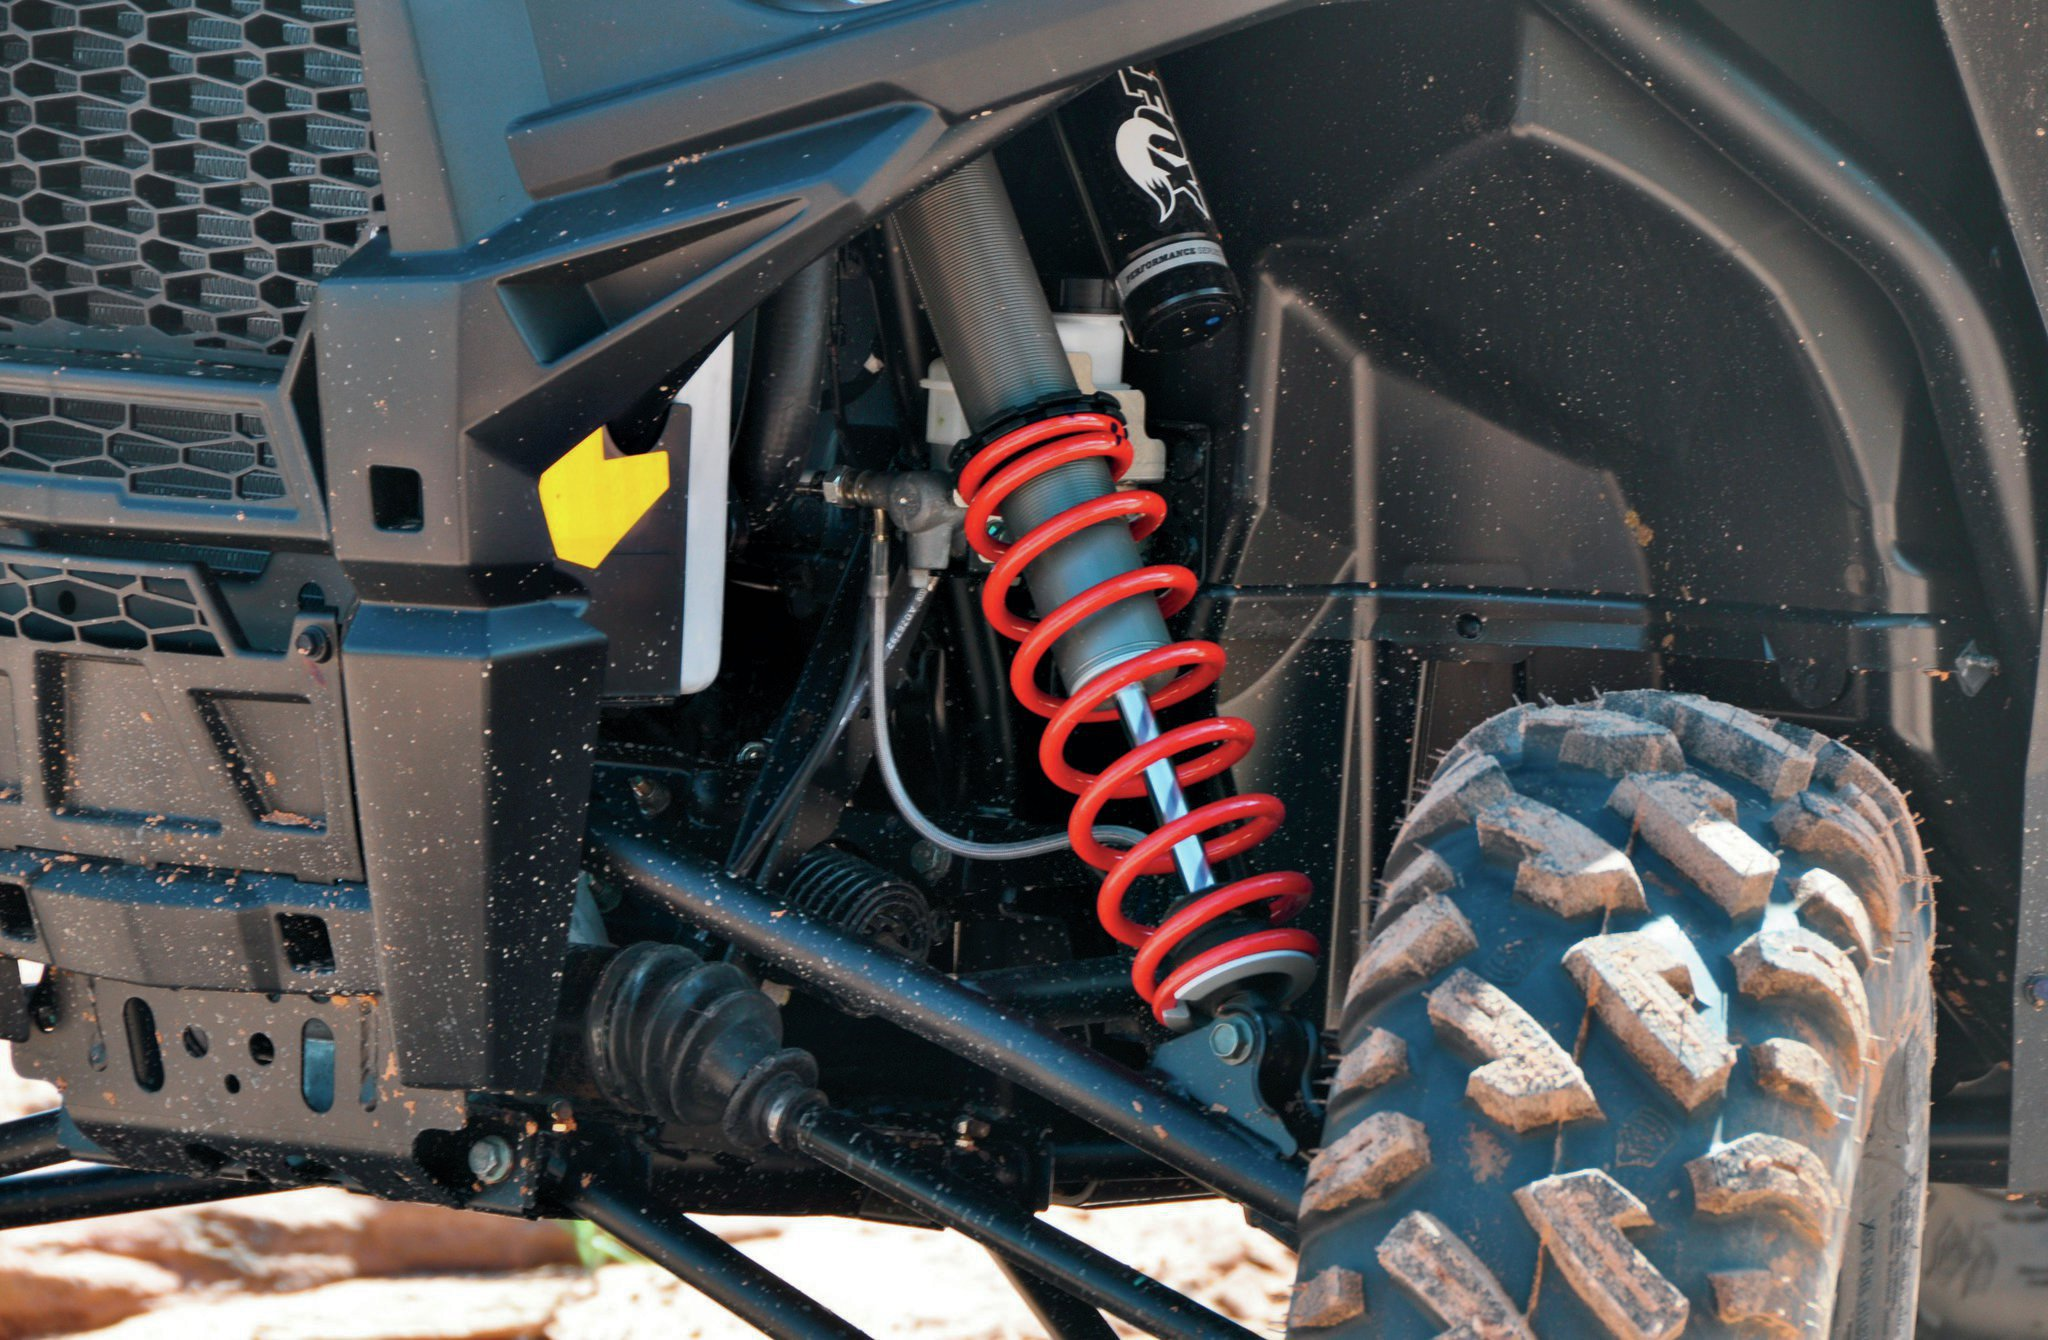 The RZR S front shocks feature Fox Podium X 2.0 with piggybacks. A-arms are standard RZR S with GBC Dirt Commander Tires (27x9x12 front and 27x11x12 rear).